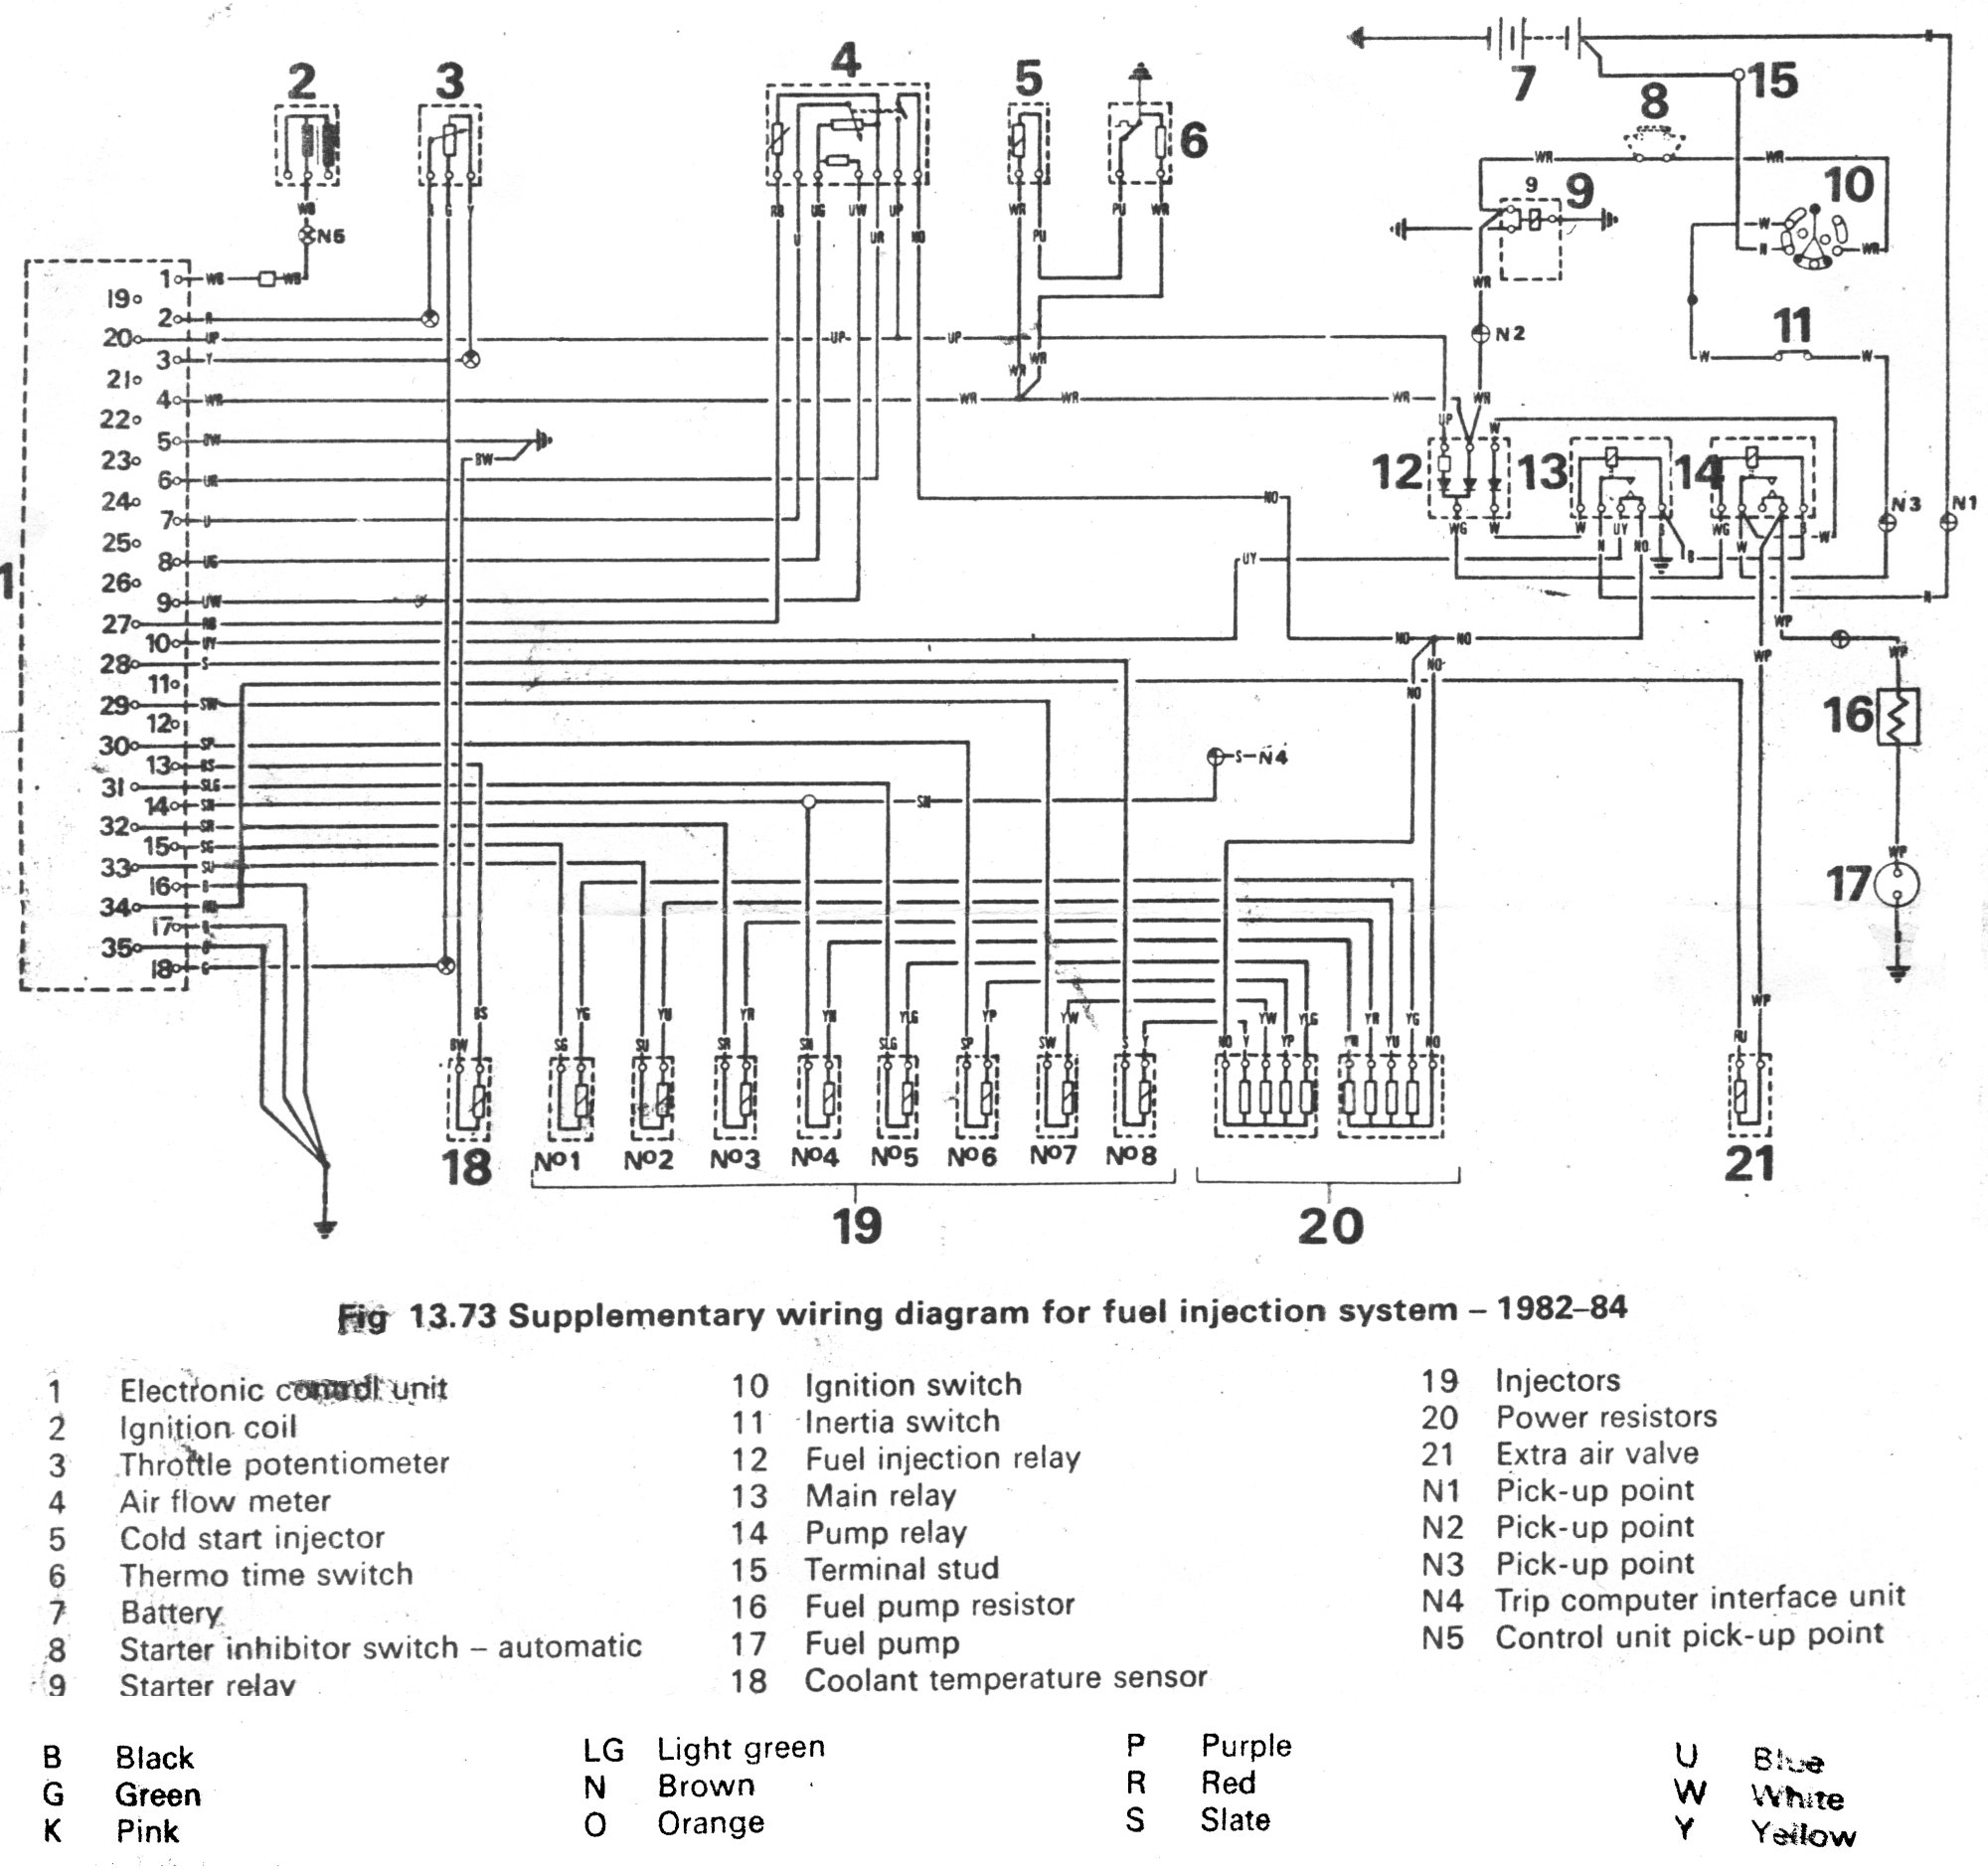 lucas_efi_1982_1984 v8 flapper efi wiring diagram please!!! discovery forum lr4x4 1937 Chevy Panel Truck at alyssarenee.co